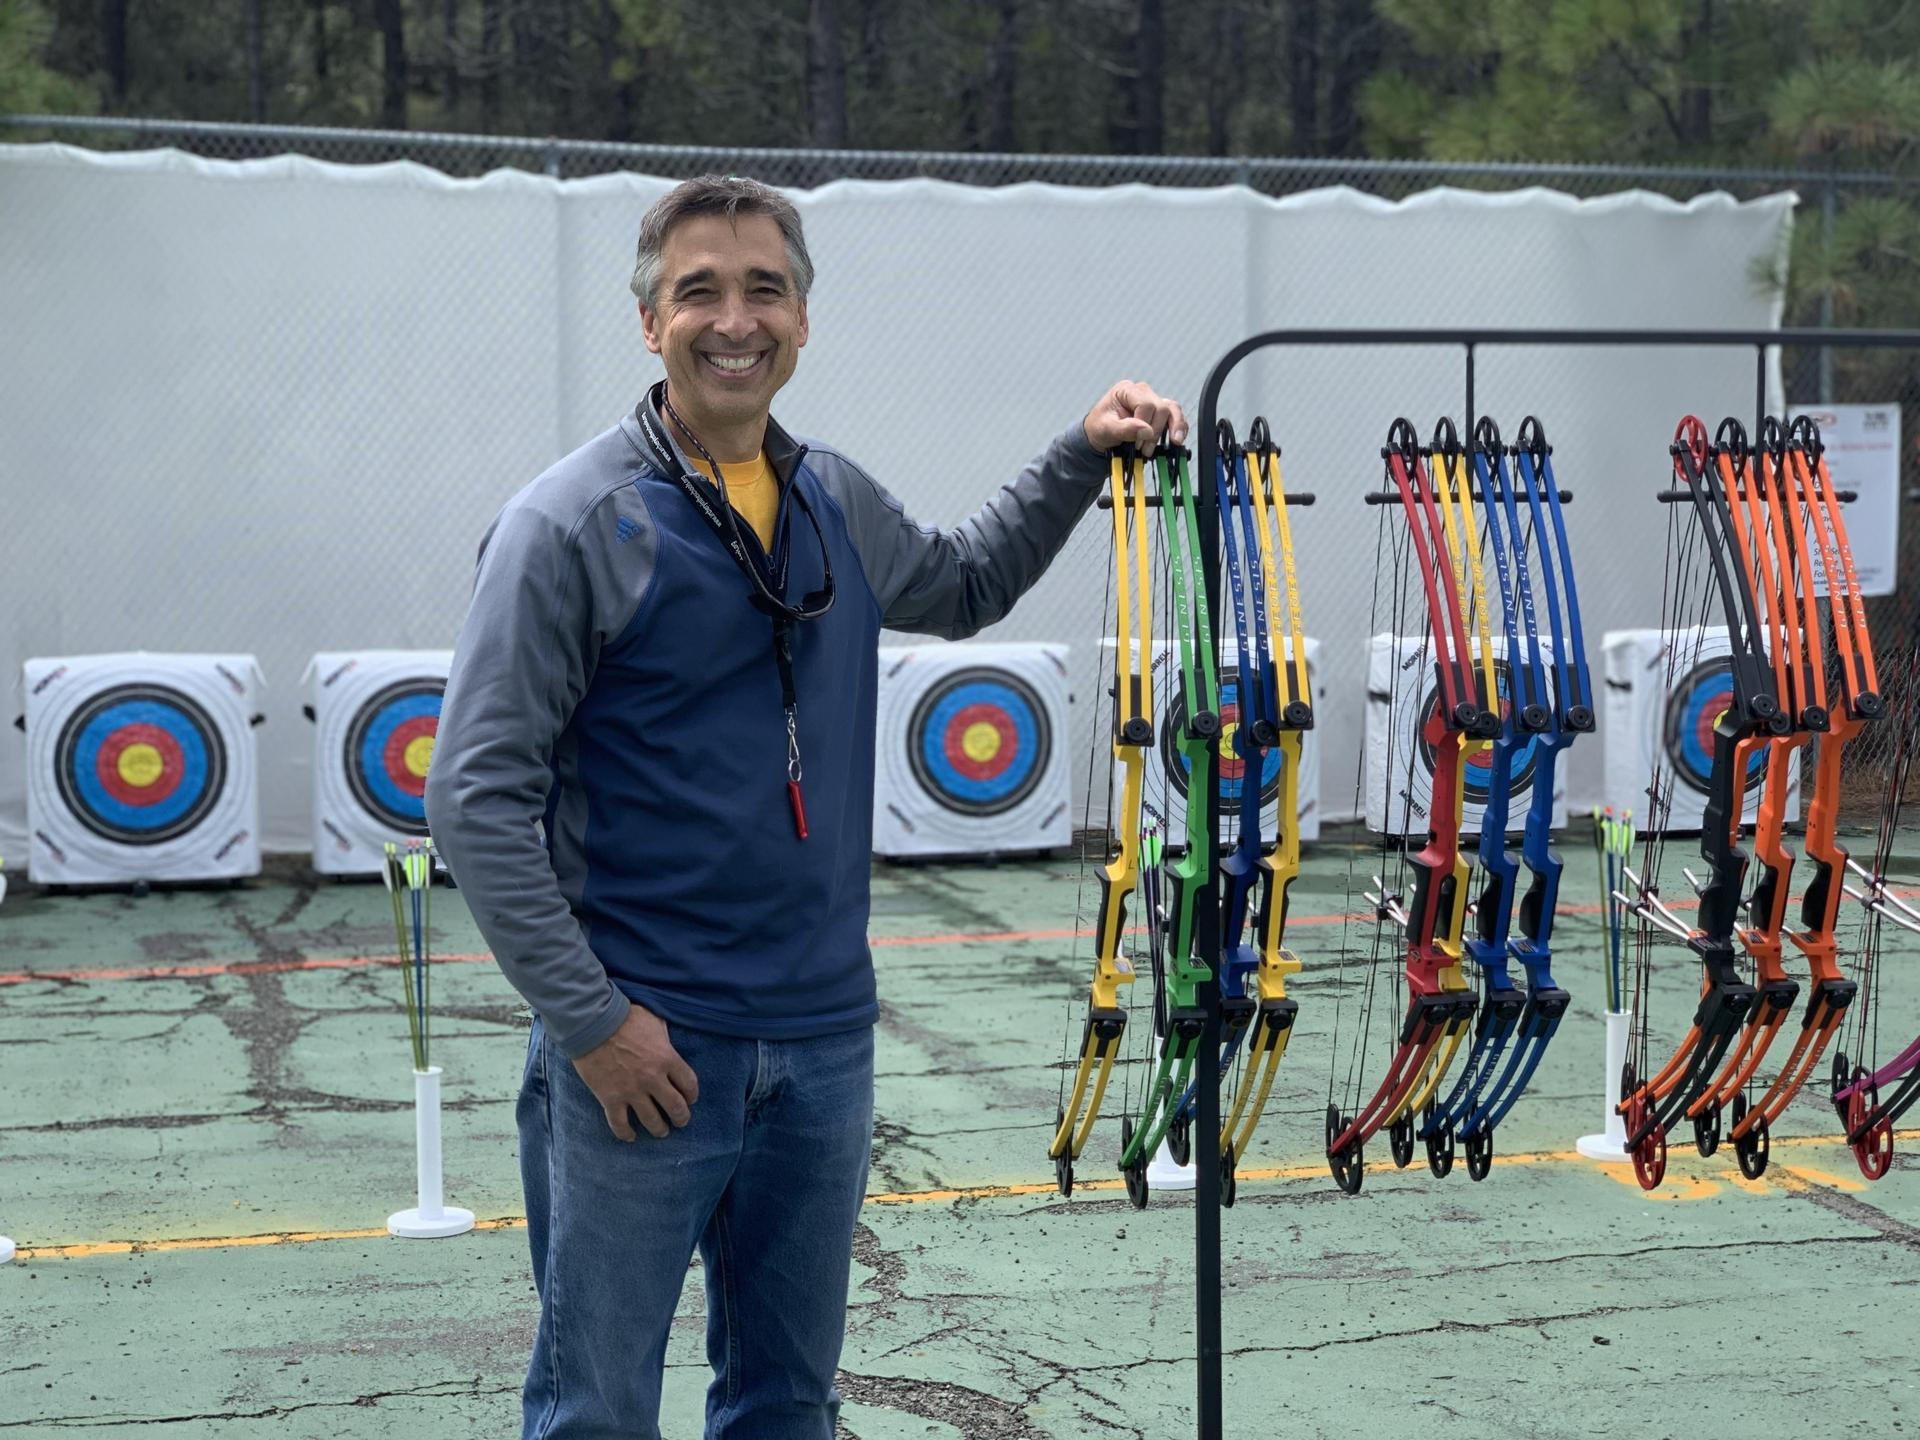 Mr. Valle with compound bows